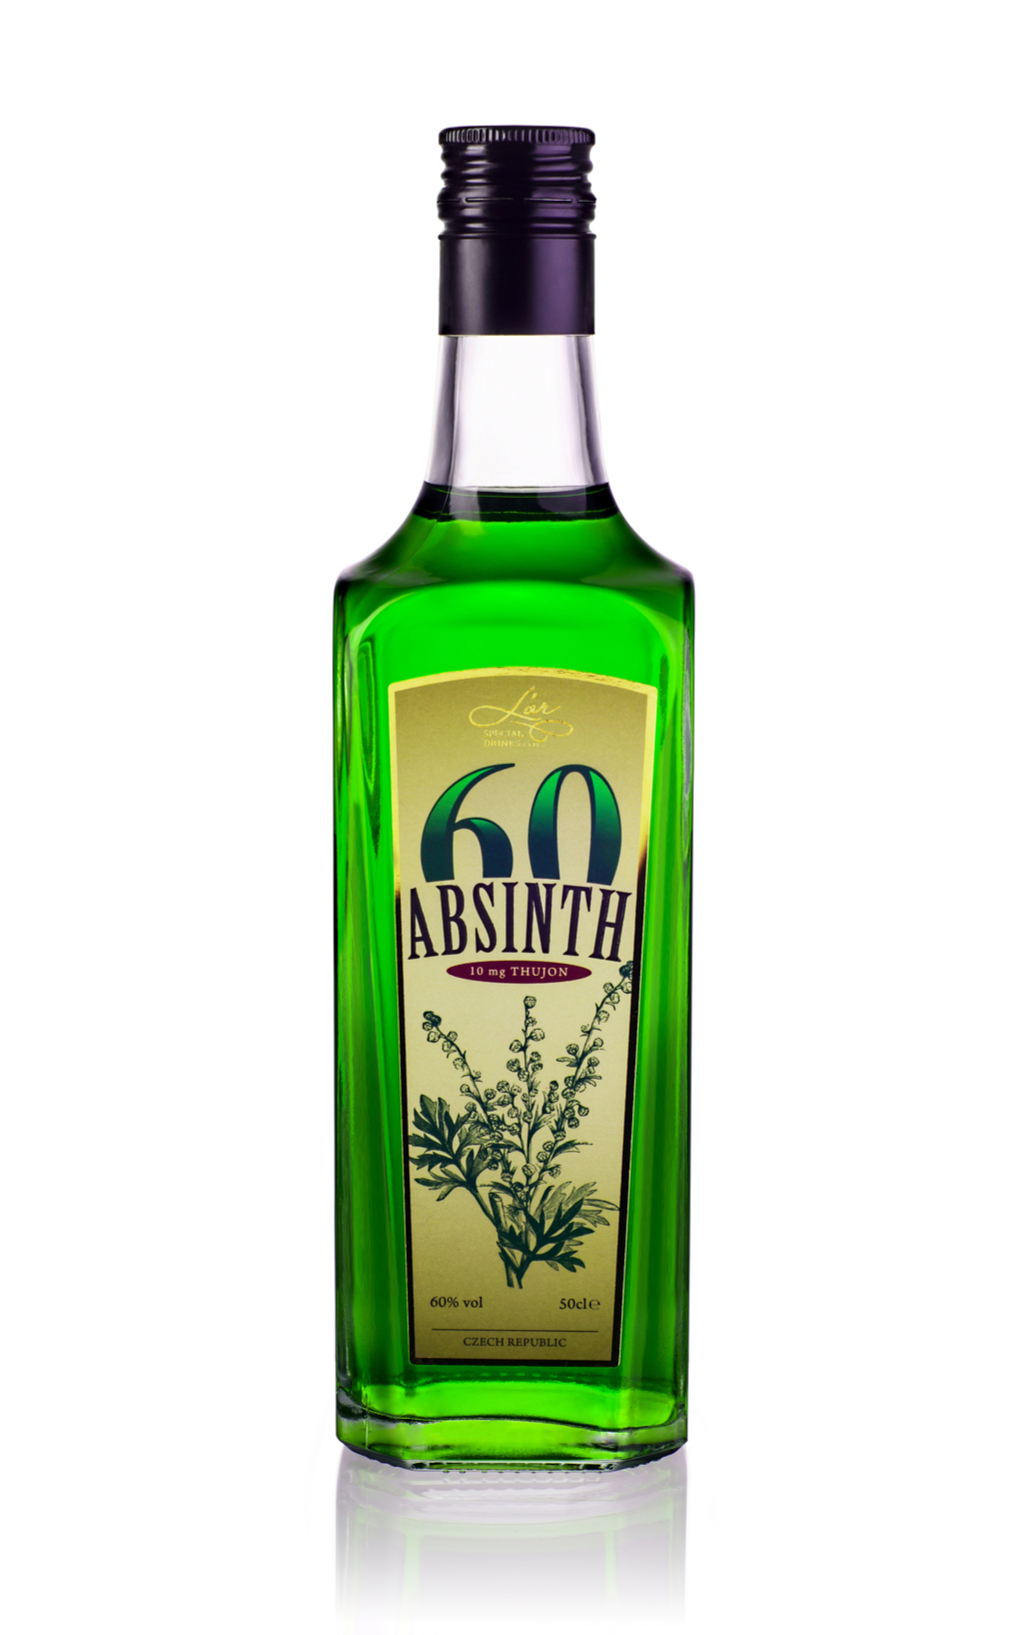 Bottle of Absinthe Bogus 20th Century Facts